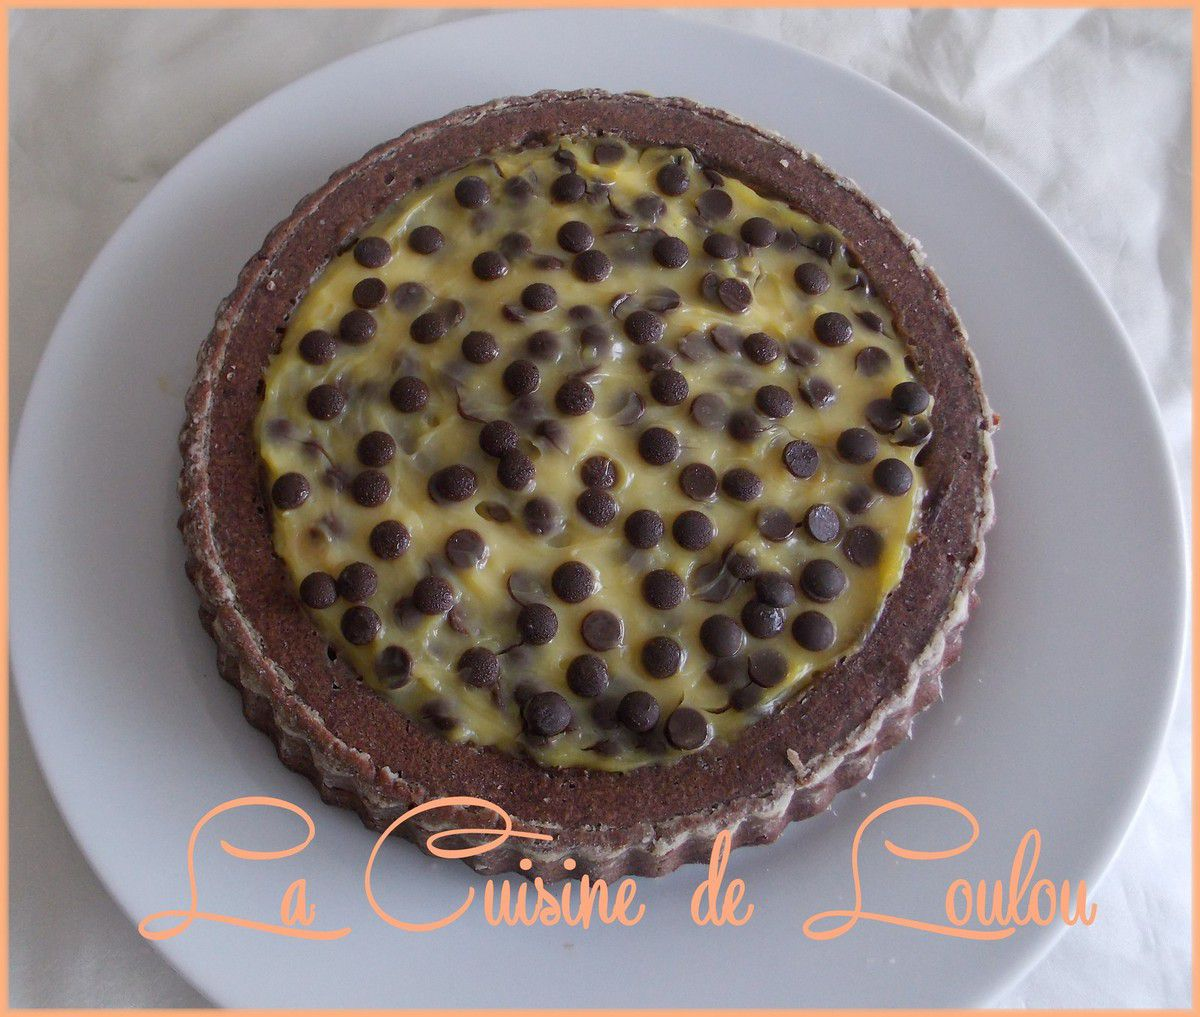 tarte cake au chocolat garnie de cr me patissi re et p pites de chocolat la cuisine de loulou. Black Bedroom Furniture Sets. Home Design Ideas